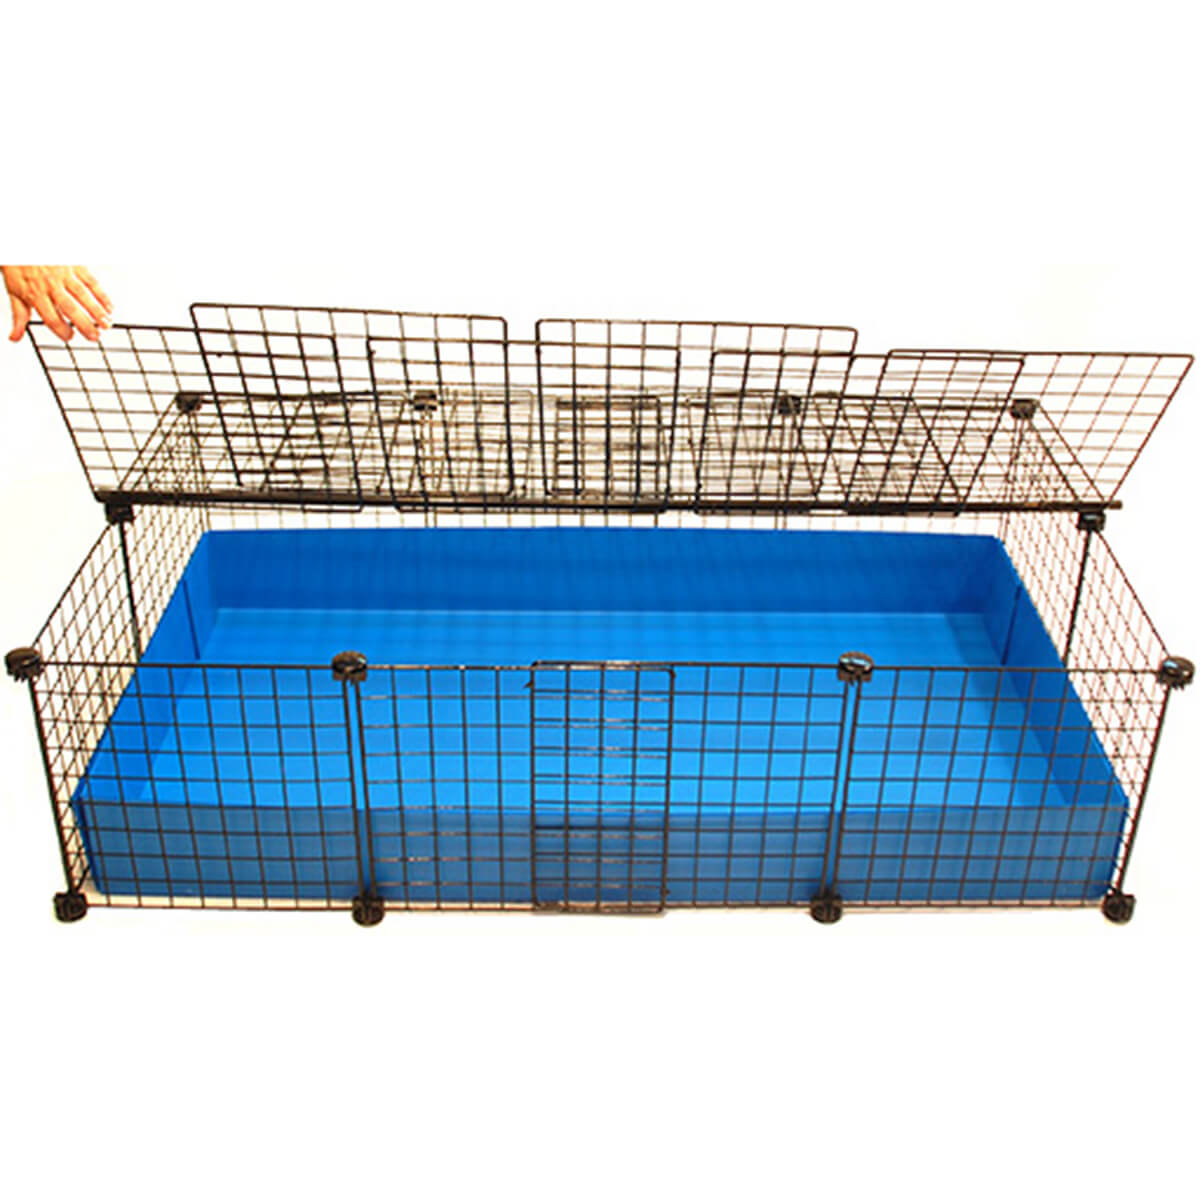 Medium 2x3 5 grids covered standard covered cages c for Coroplast guinea pig cage for sale